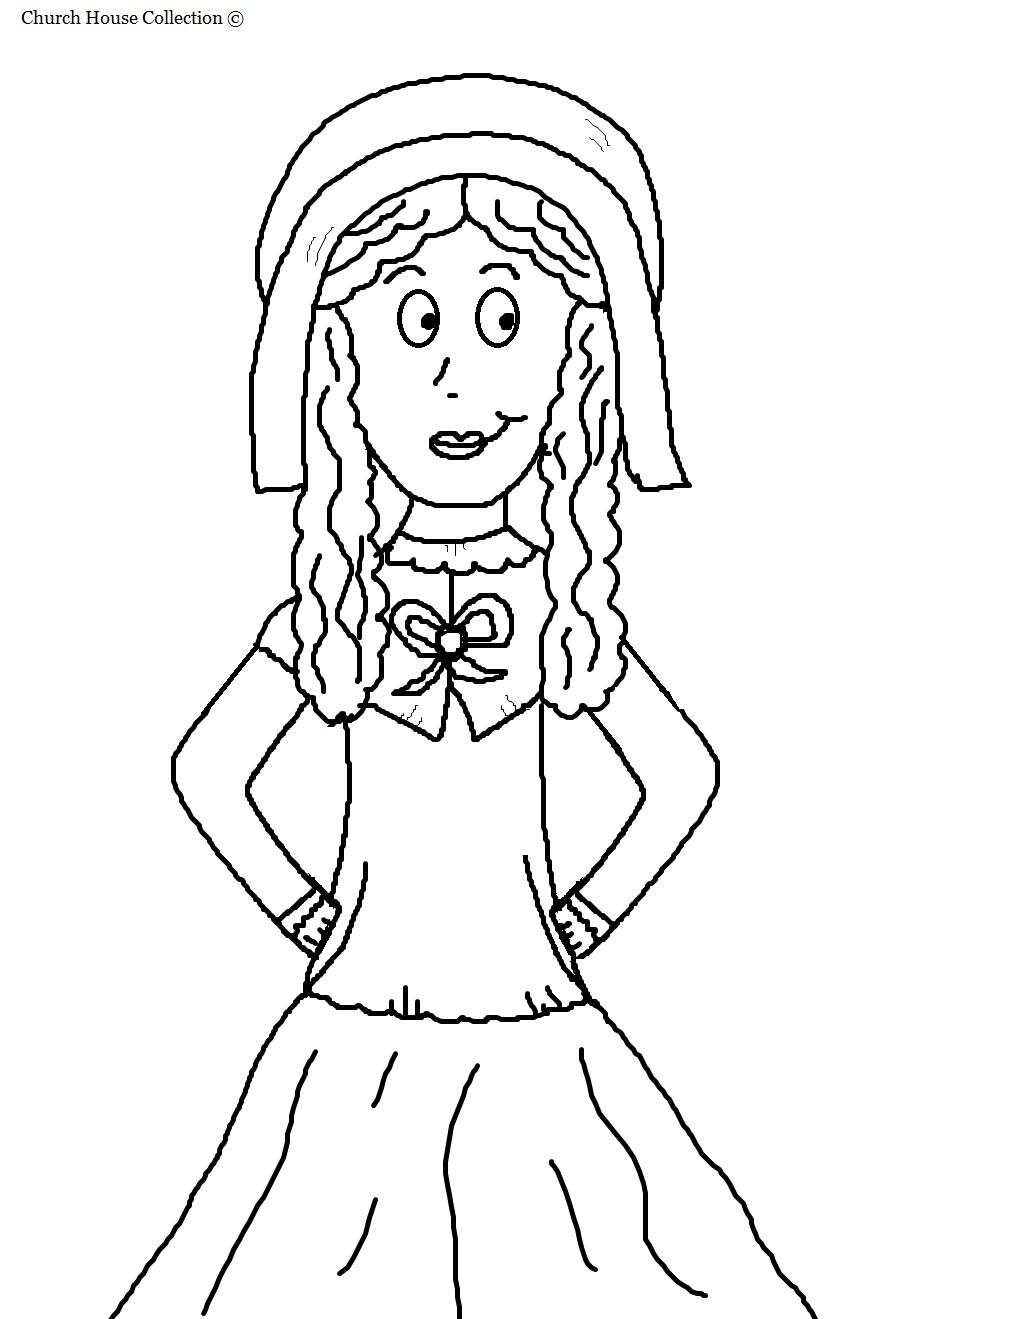 pilgrim boy and girl coloring pages church house collection blog free printable pilgrim pilgrim coloring boy and girl pages